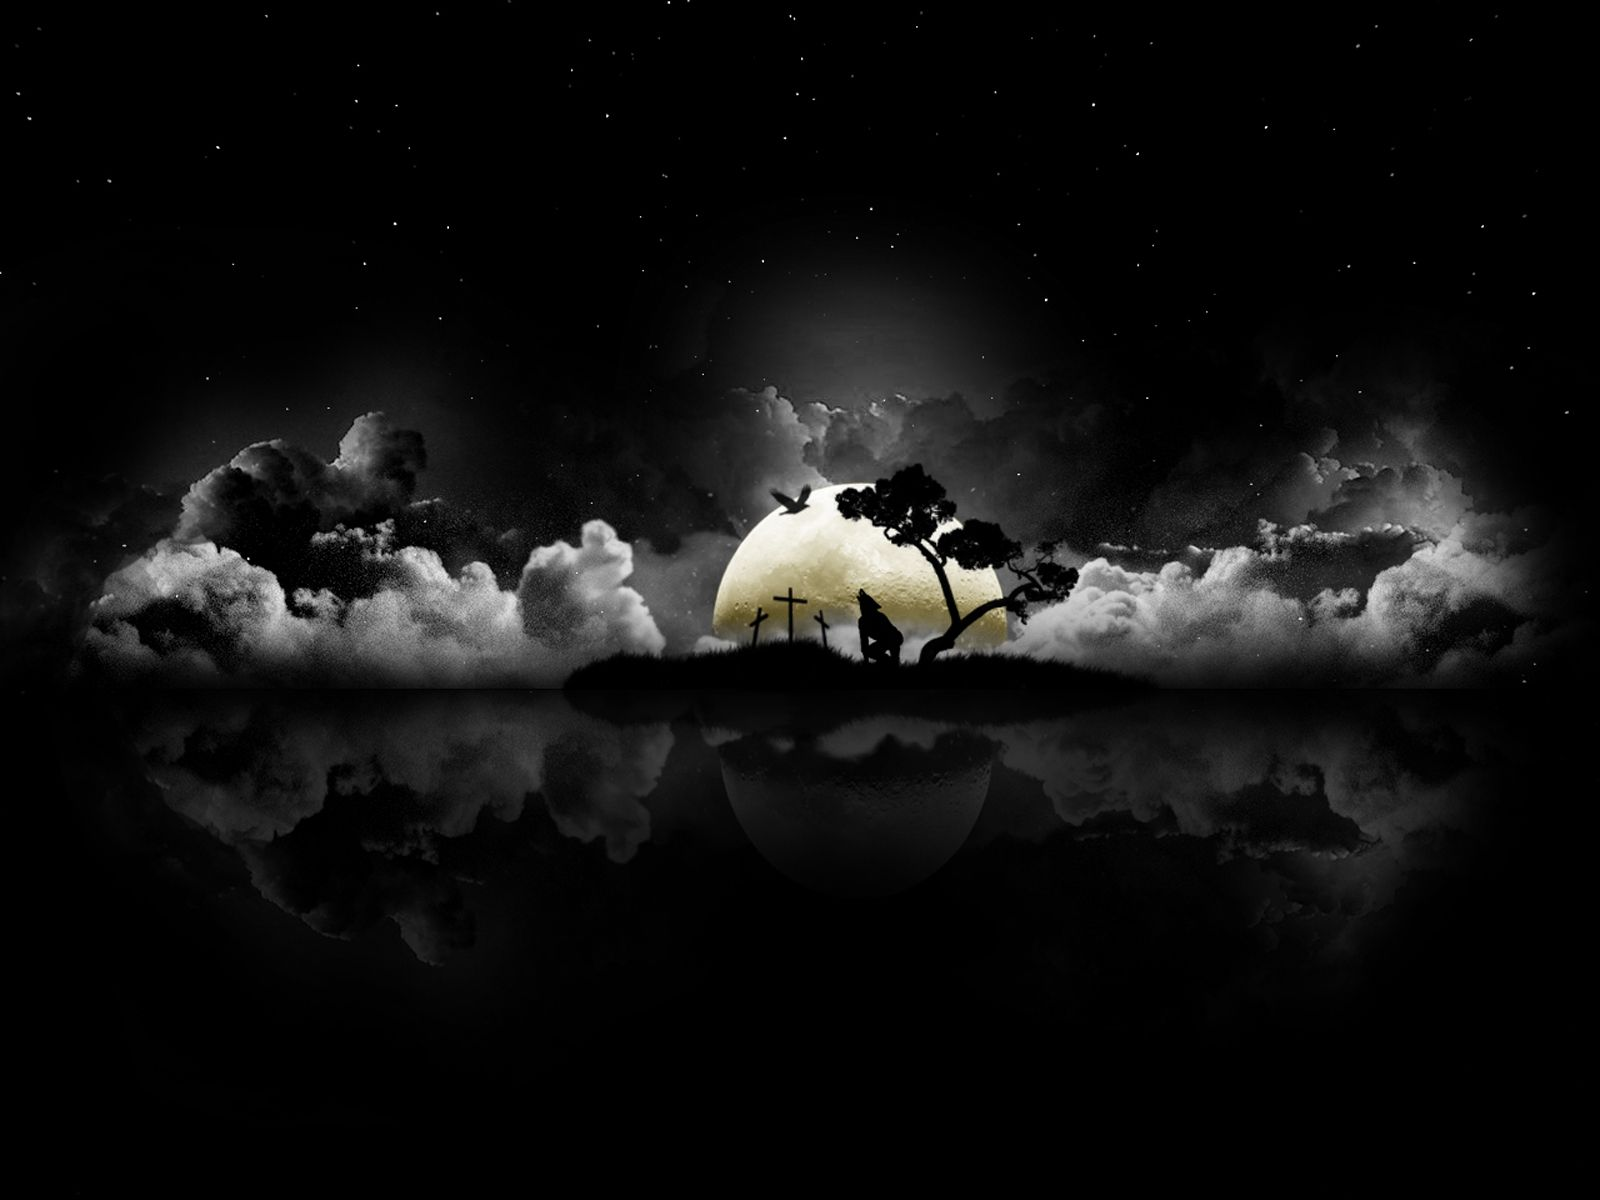 Spooky Wallpapers Scary Wallpaper Horor Mix Picture Scary Wallpapers